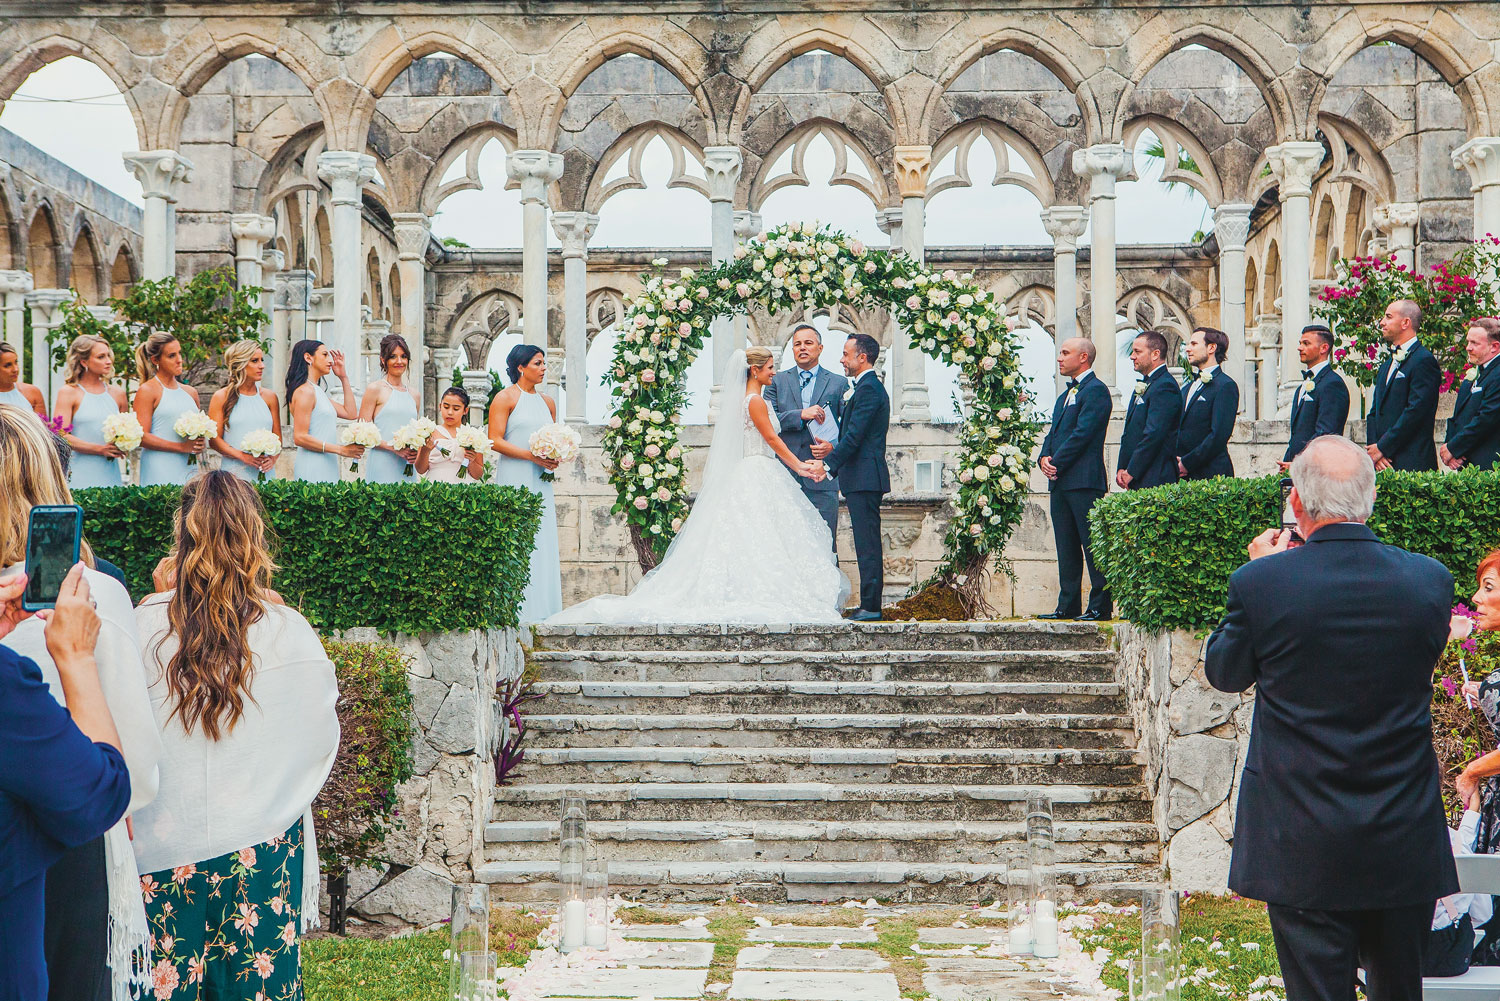 Inside Weddings magazine summer 2019 issue preview wedding ceremony at the cloisters four seasons ocean club bahamas destination wedding